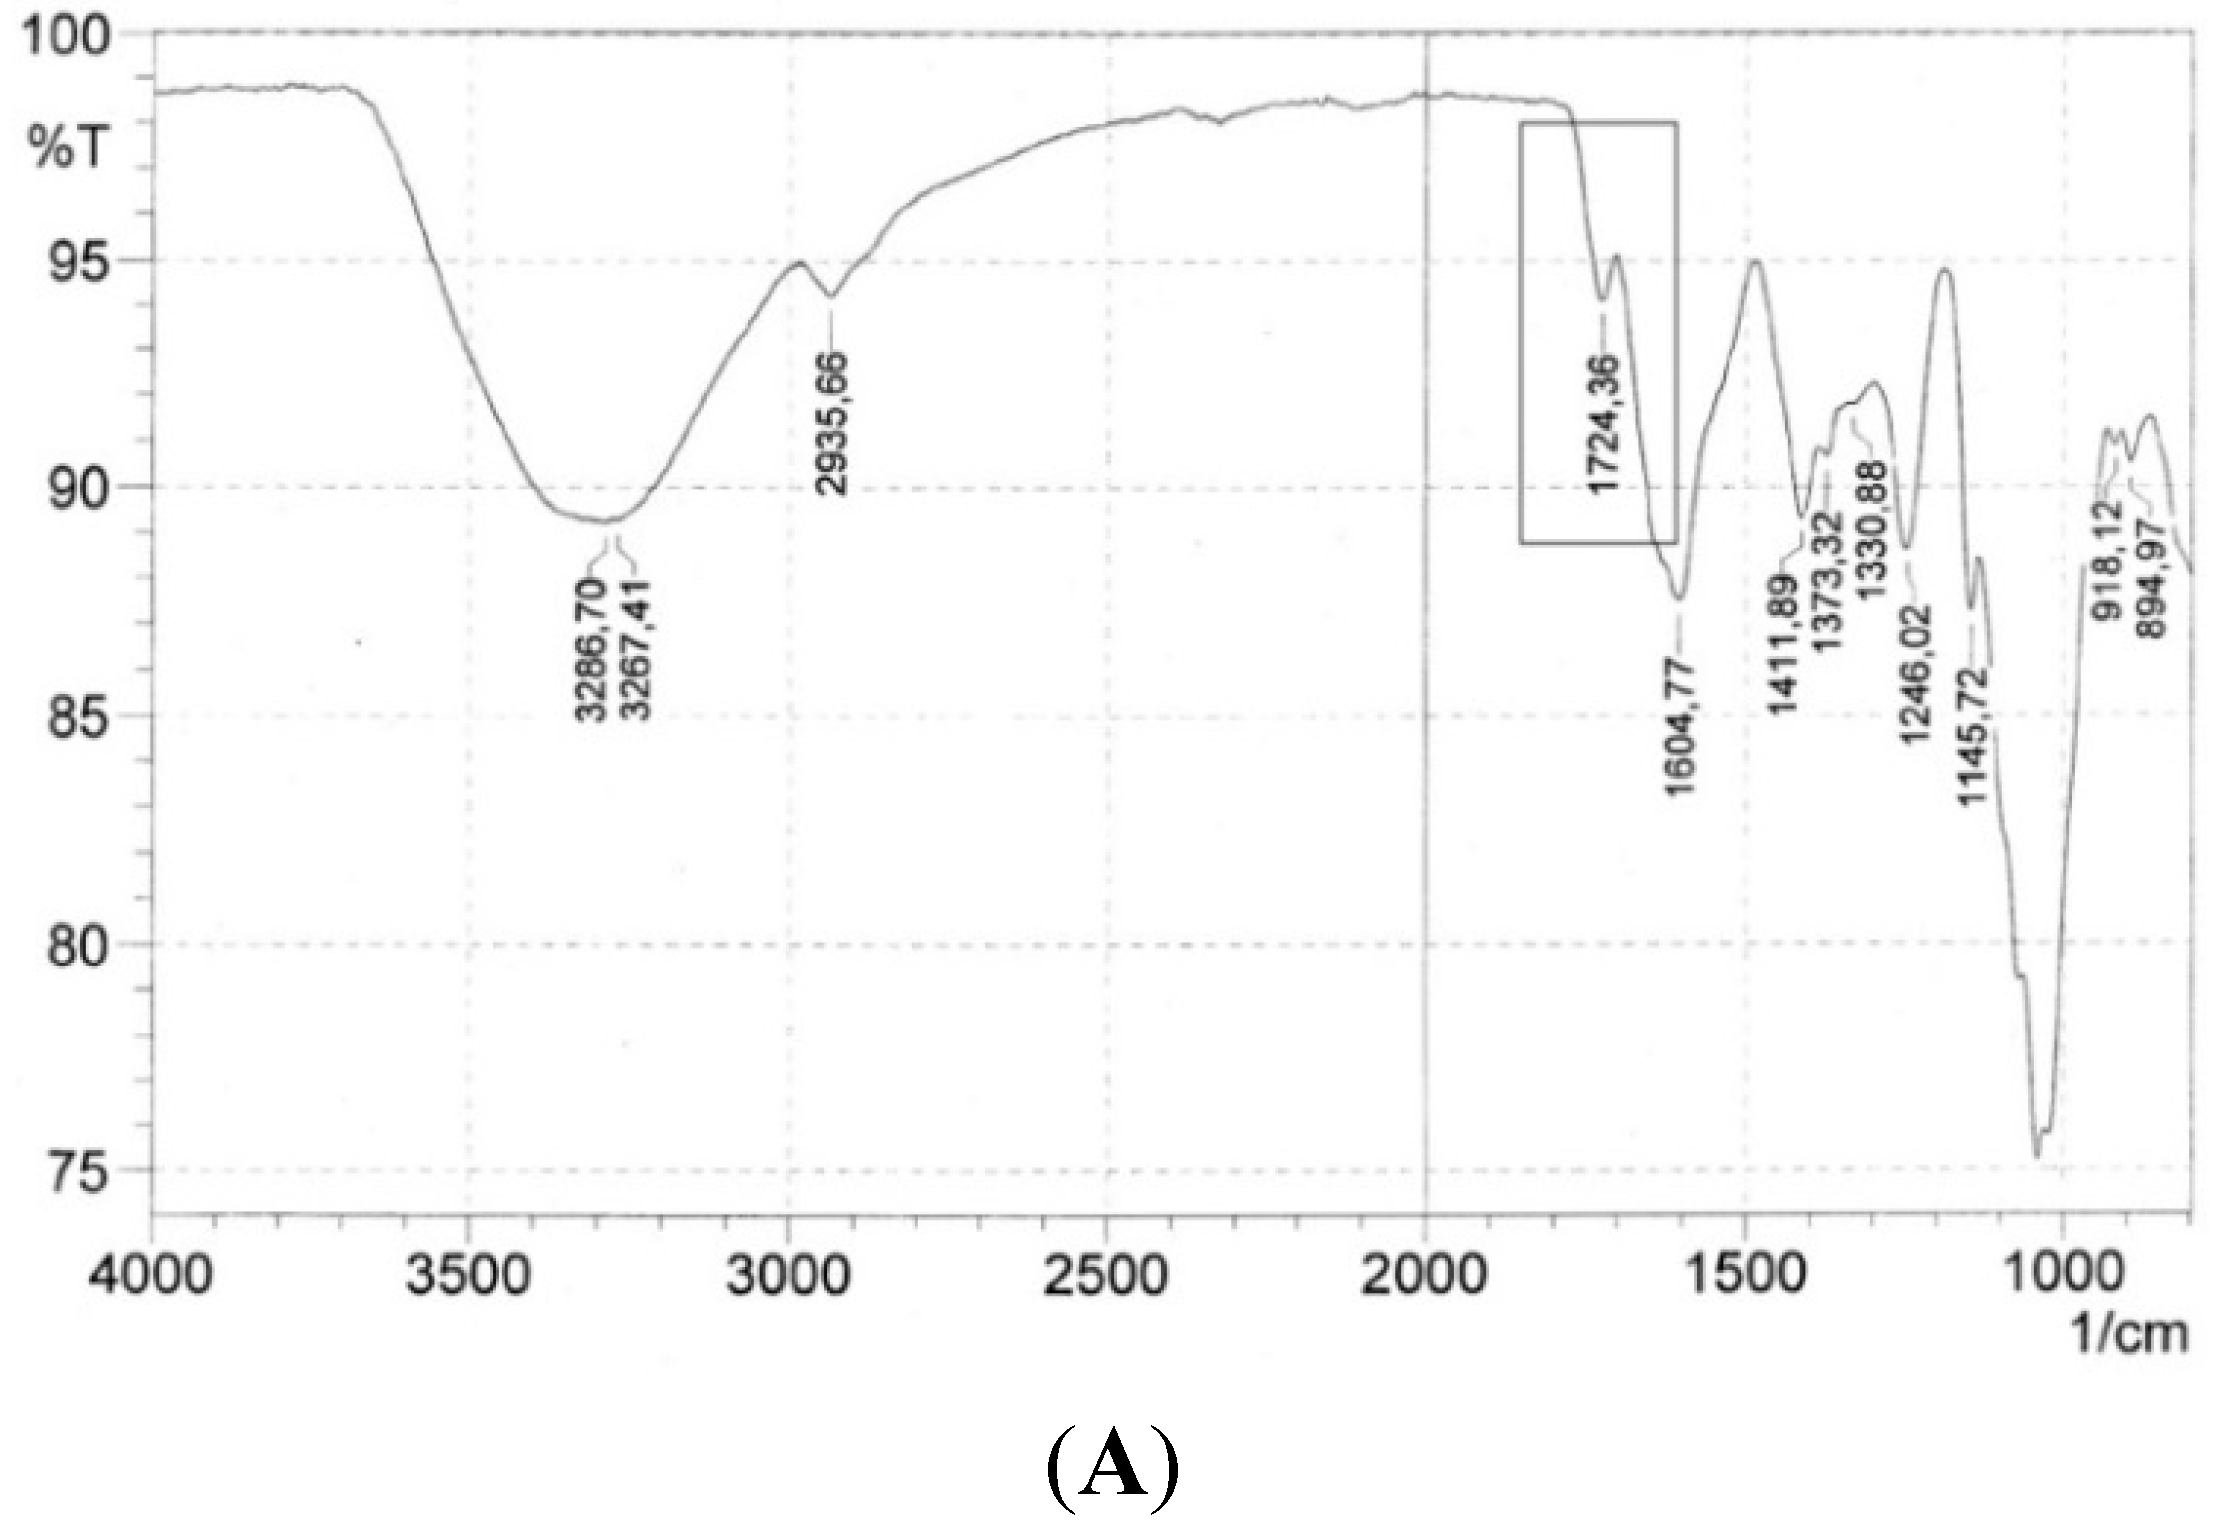 isolation of protein by ammonium sulfate precipitation Procedure - ammonium sulphate precipitation of proteins 1 to the sample, add a determined amount of saturated ammonium sulfate solution such that the final concetration is 10% (depending on the proteins of interest, ammonium sulfate concentrations form 10 to 90% can de tried).